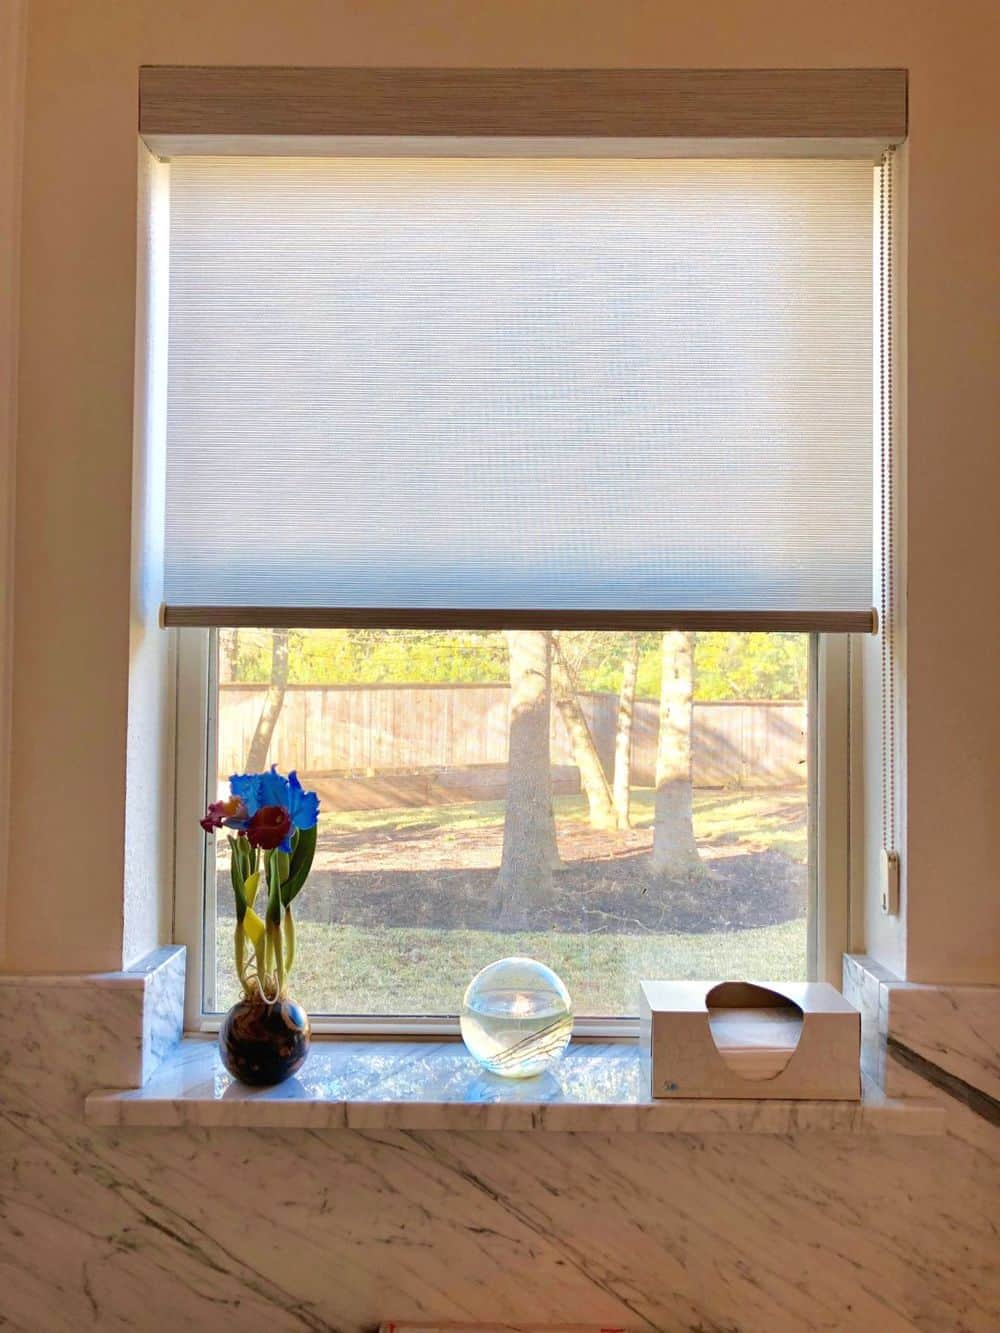 A focused look at this bathroom's glass window with a window shade. The bathroom features beige walls too.